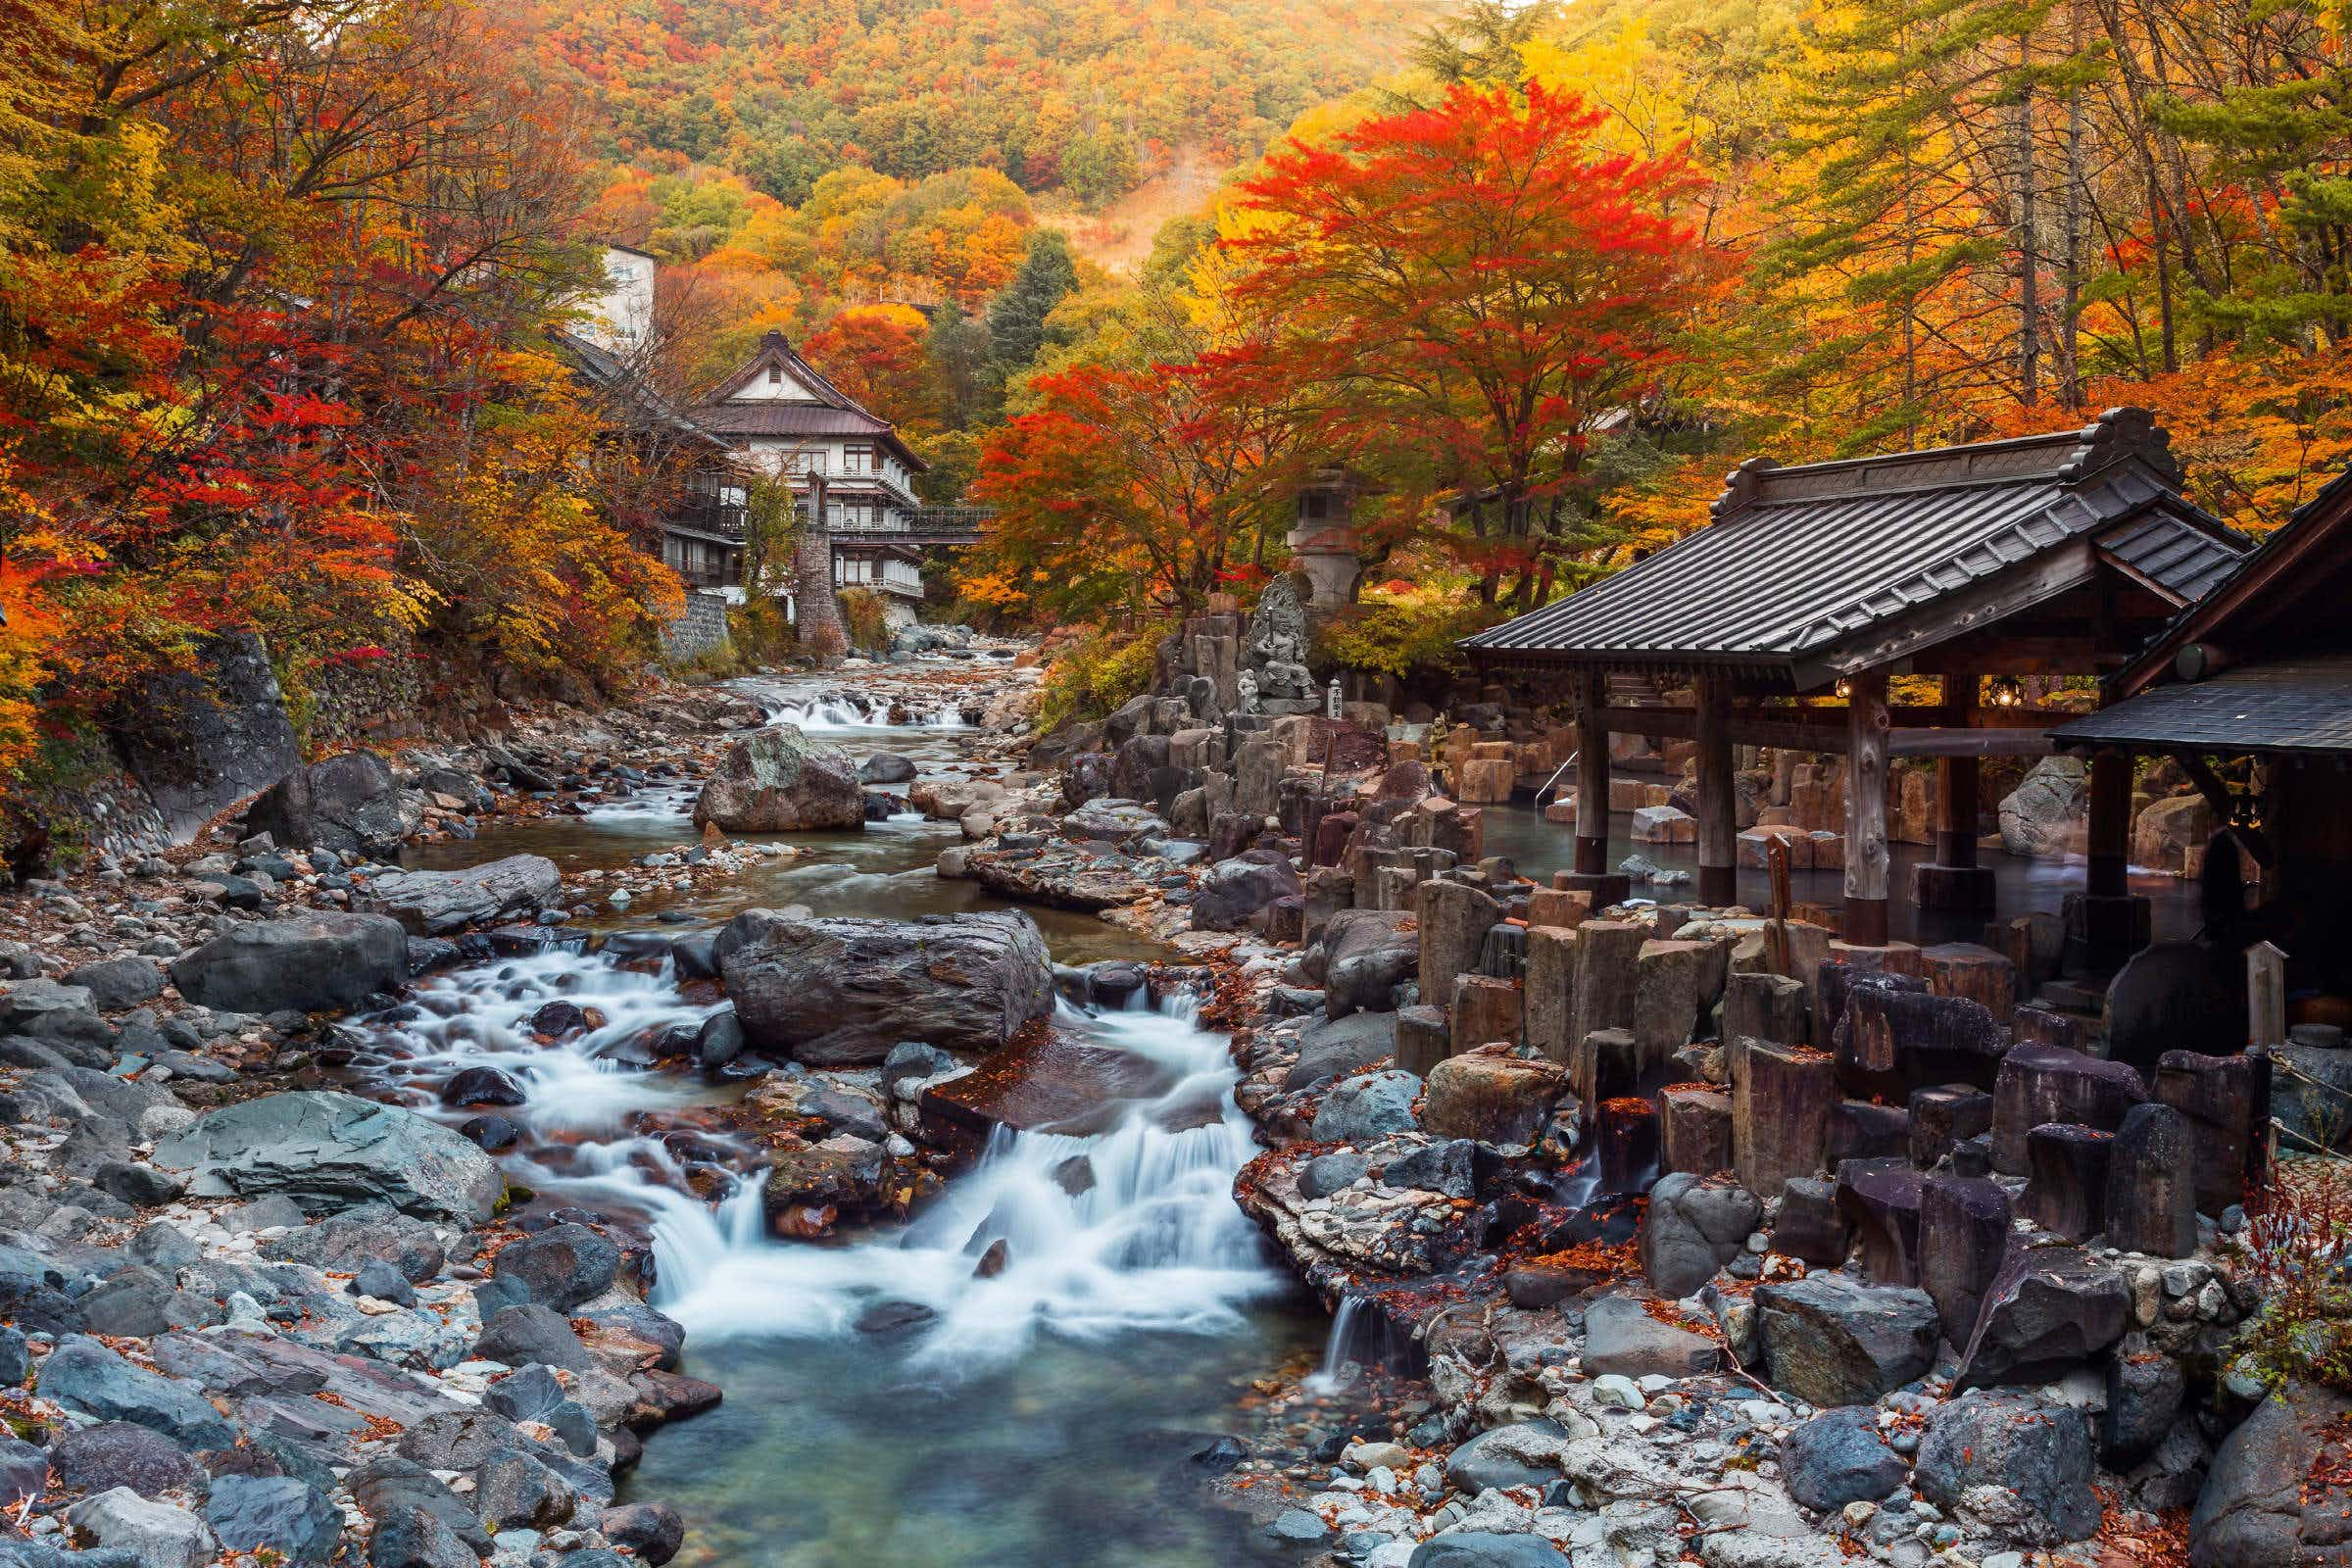 Nature lodges and ryokans are seeing a huge increase in interest on Airbnb